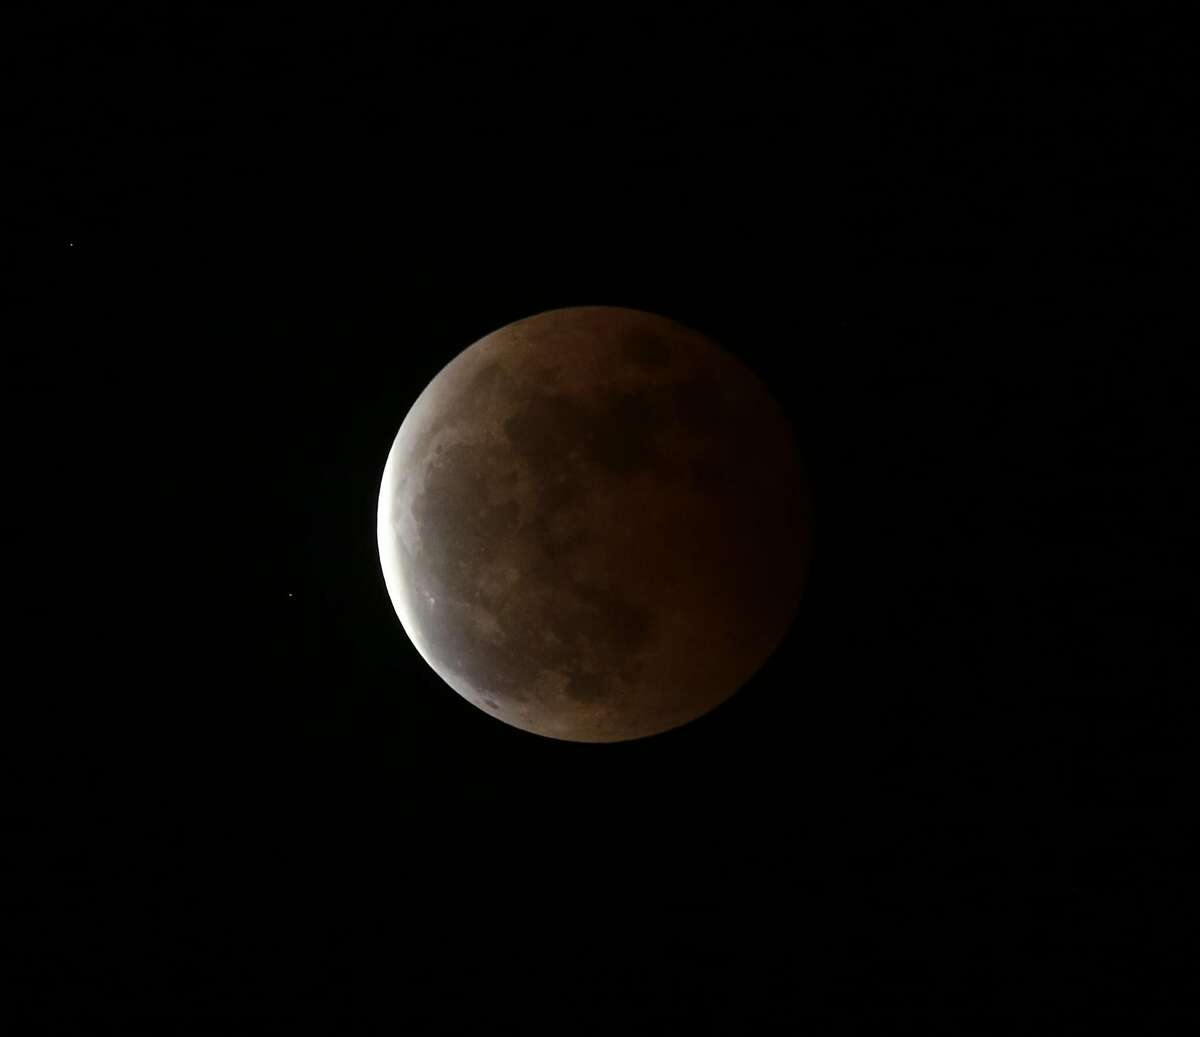 The deep orange color of the moon slowly fades during a Total Lunar Eclipse which is seen Wednesday, Oct. 8, 2014 from Bicutan, Paranaque city, east of Manila, Philippines. Wednesday's eclipse was the second in a series of four total lunar eclipses that occur in six-month intervals and known as a